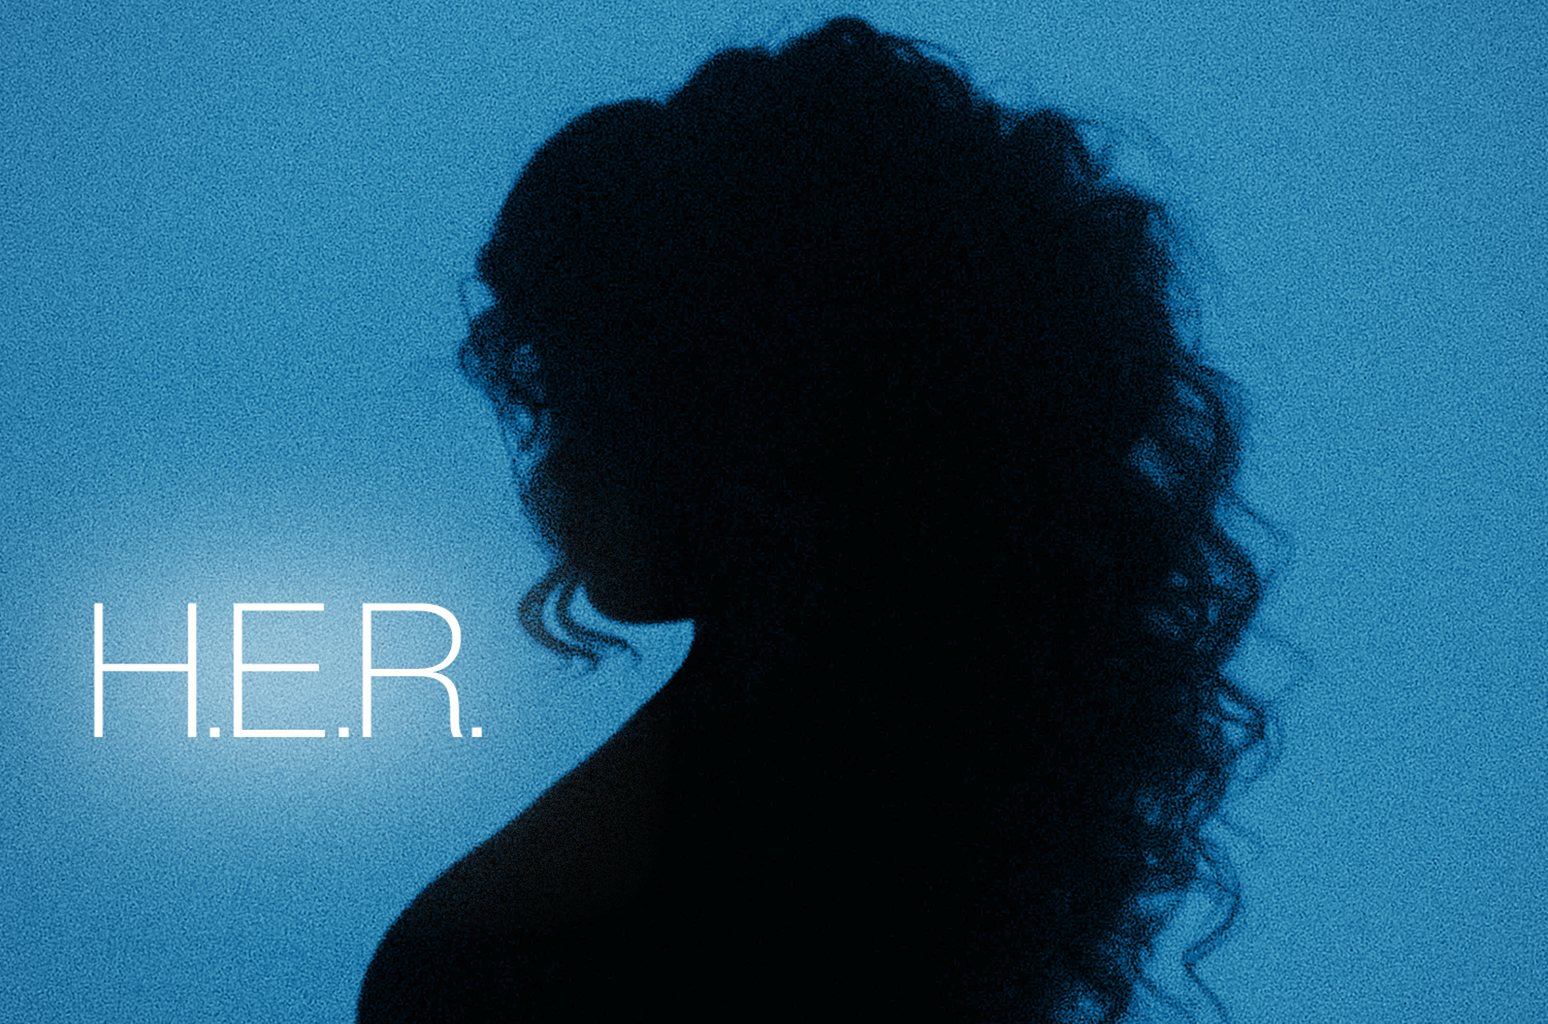 H.E.R.-singer-Pigment-cr-Courtesy-of-RCA-2016-billboard-1548.jpg